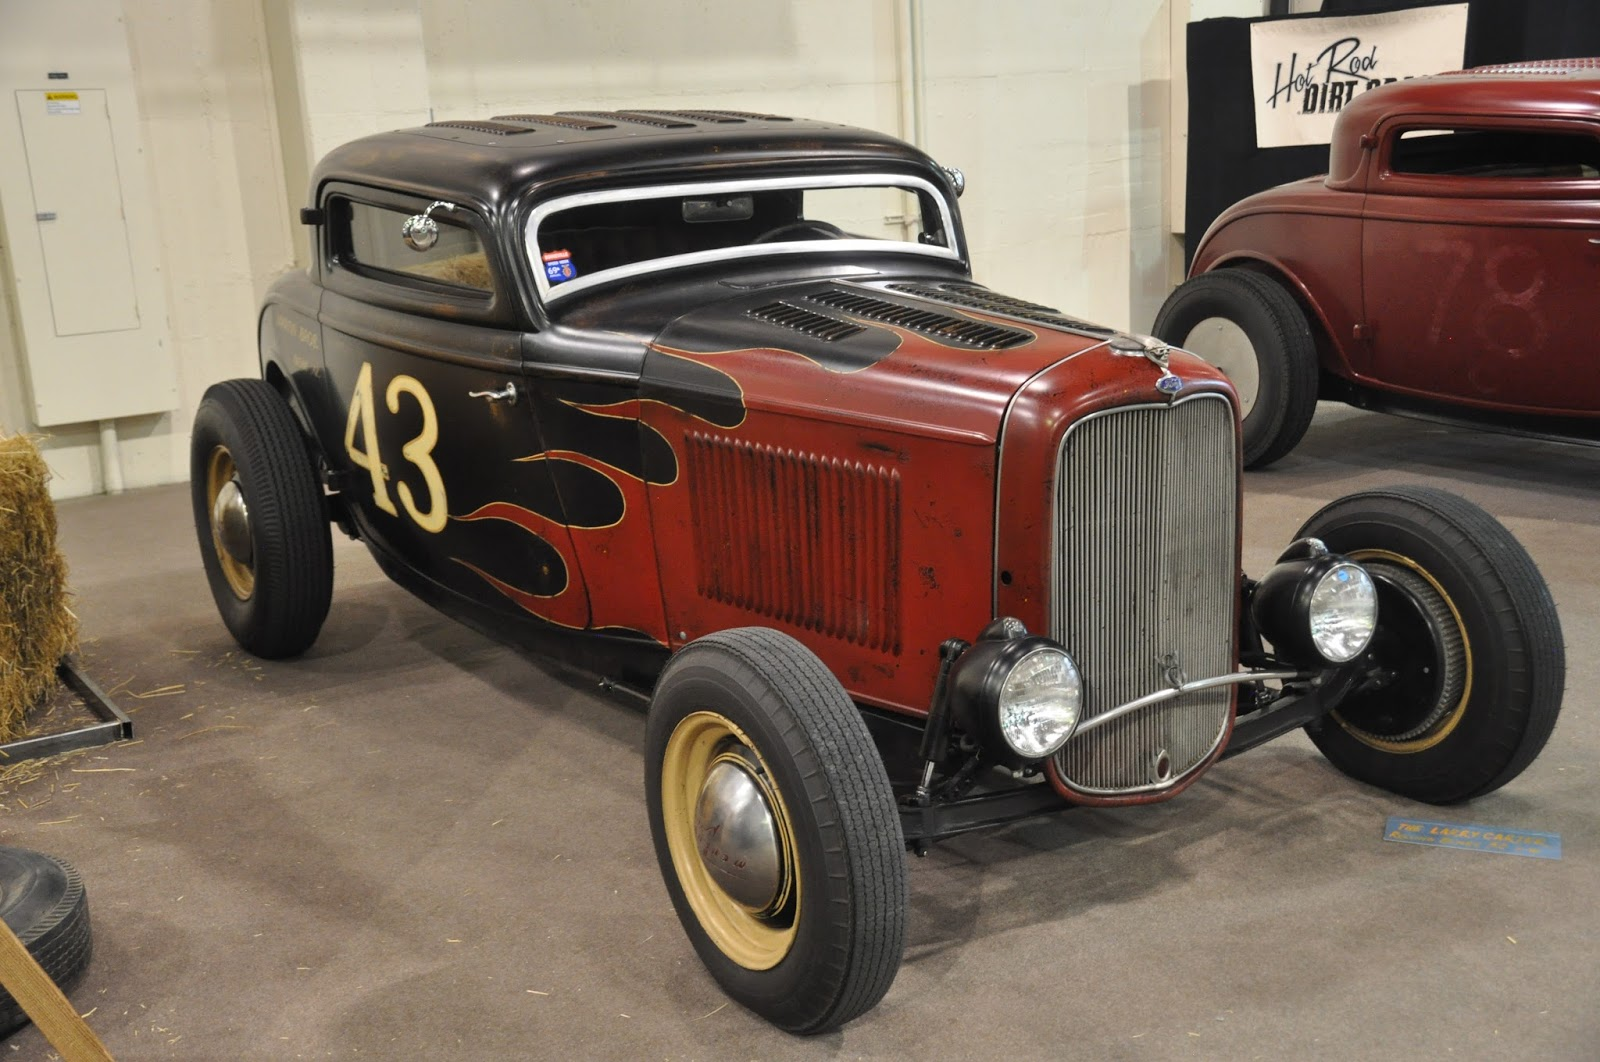 Just A Car Guy: The many cars that Rolling Bones has made were ...